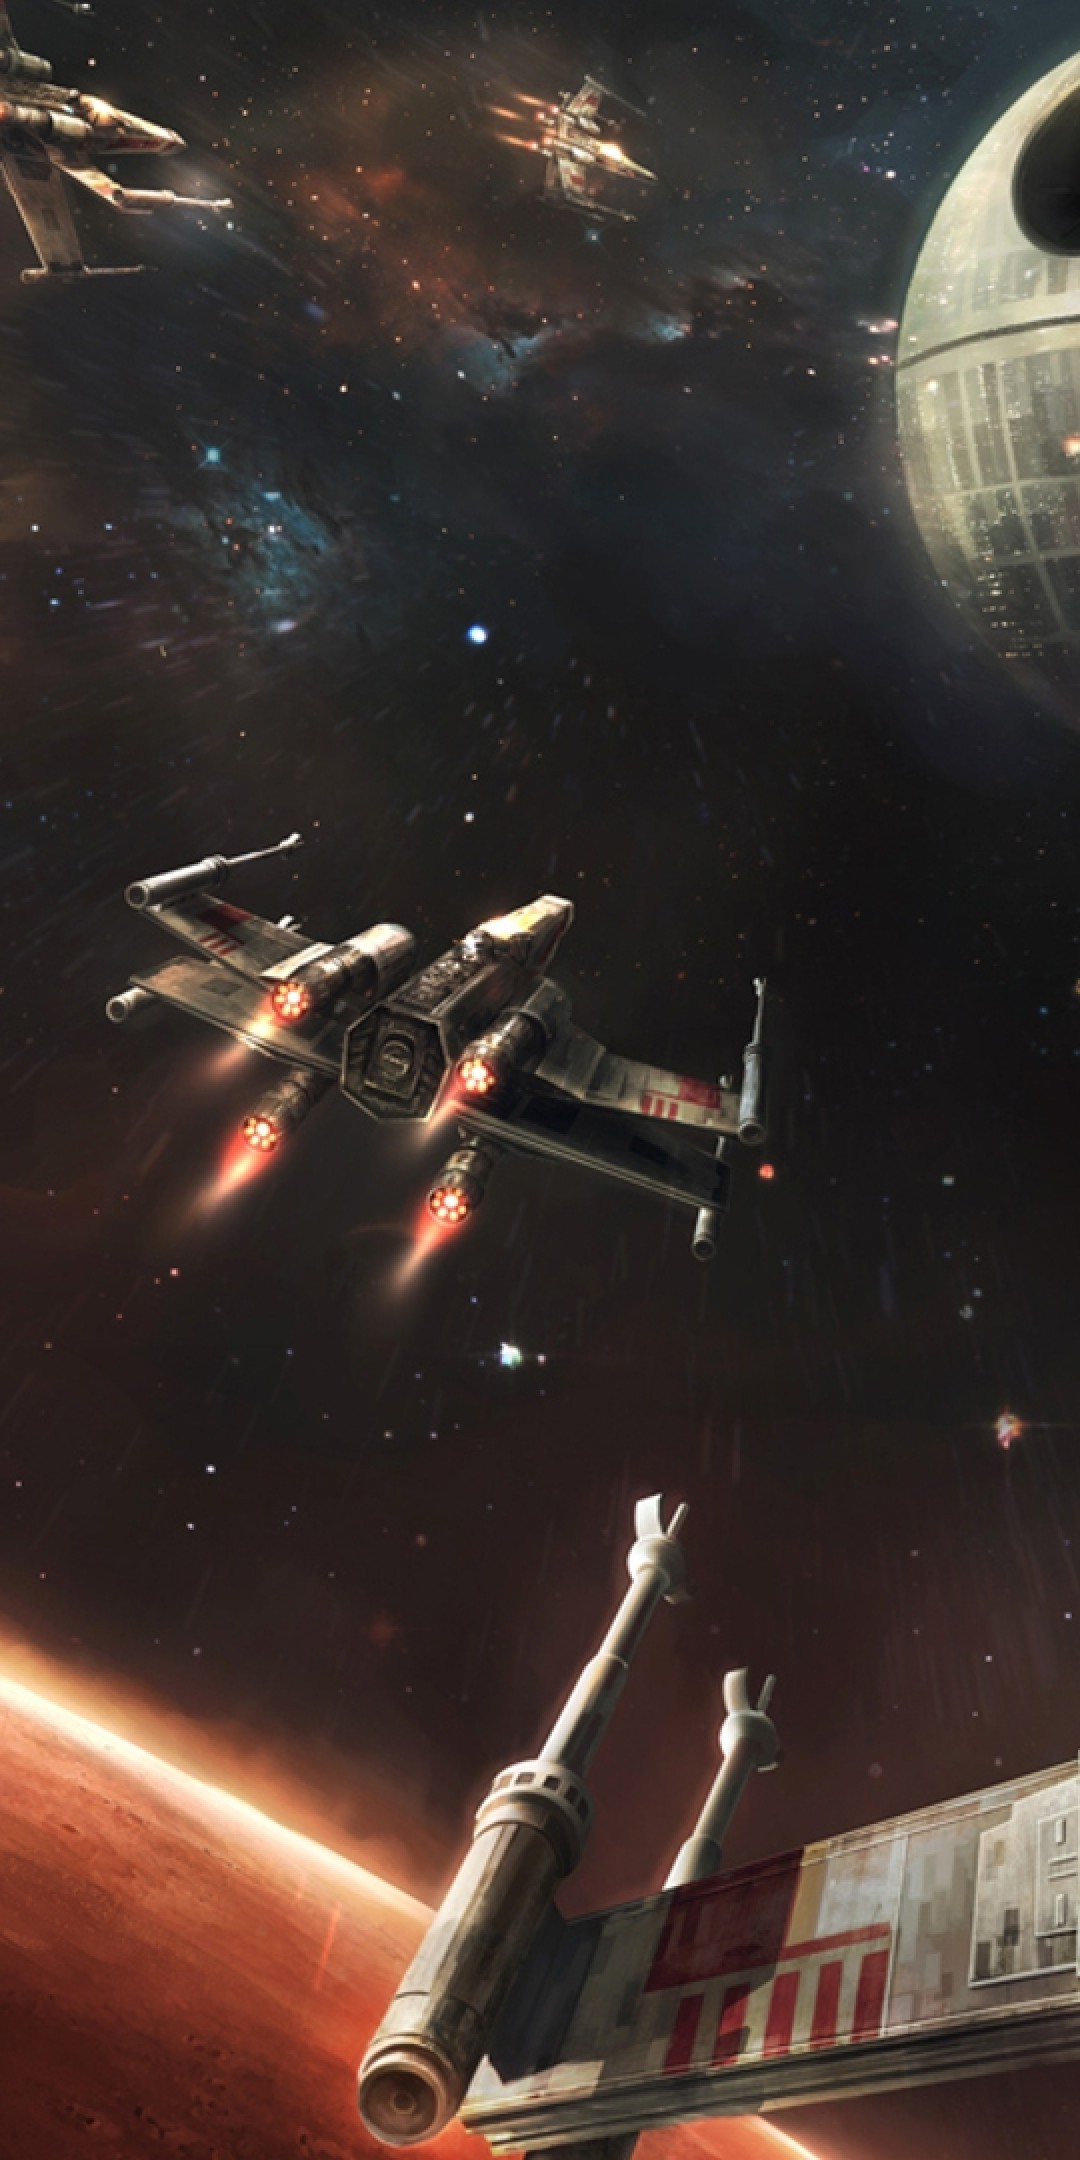 Star Wars Death Star X Wing Galaxy Planet Star Wars X Wing Wallpaper Iphone 1080x2160 Wallpaper Teahub Io